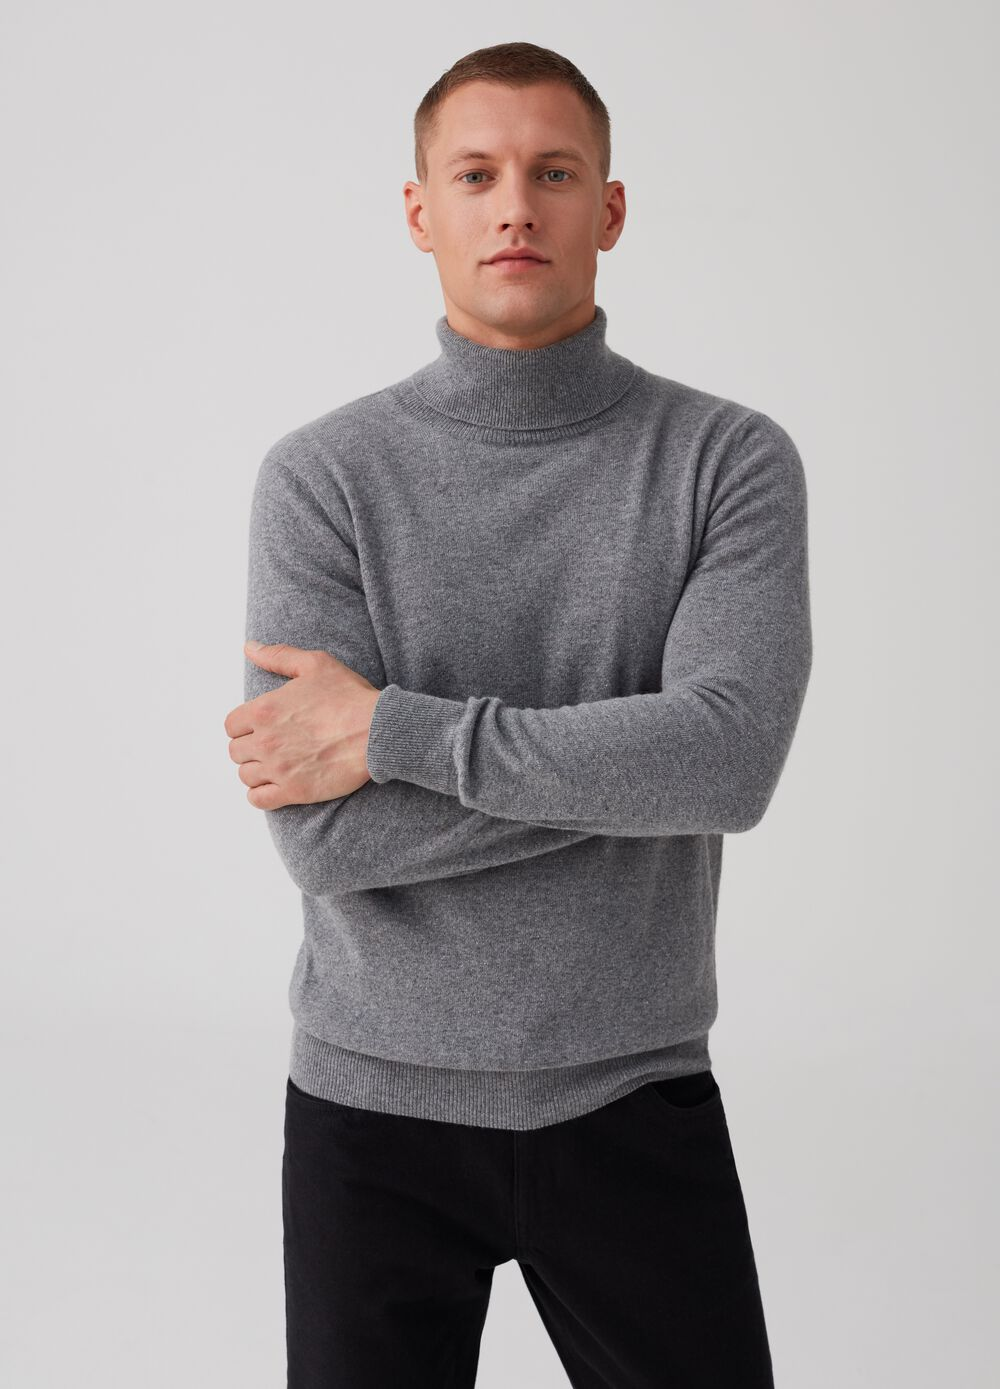 Turtleneck jumper with high neck and ribbing